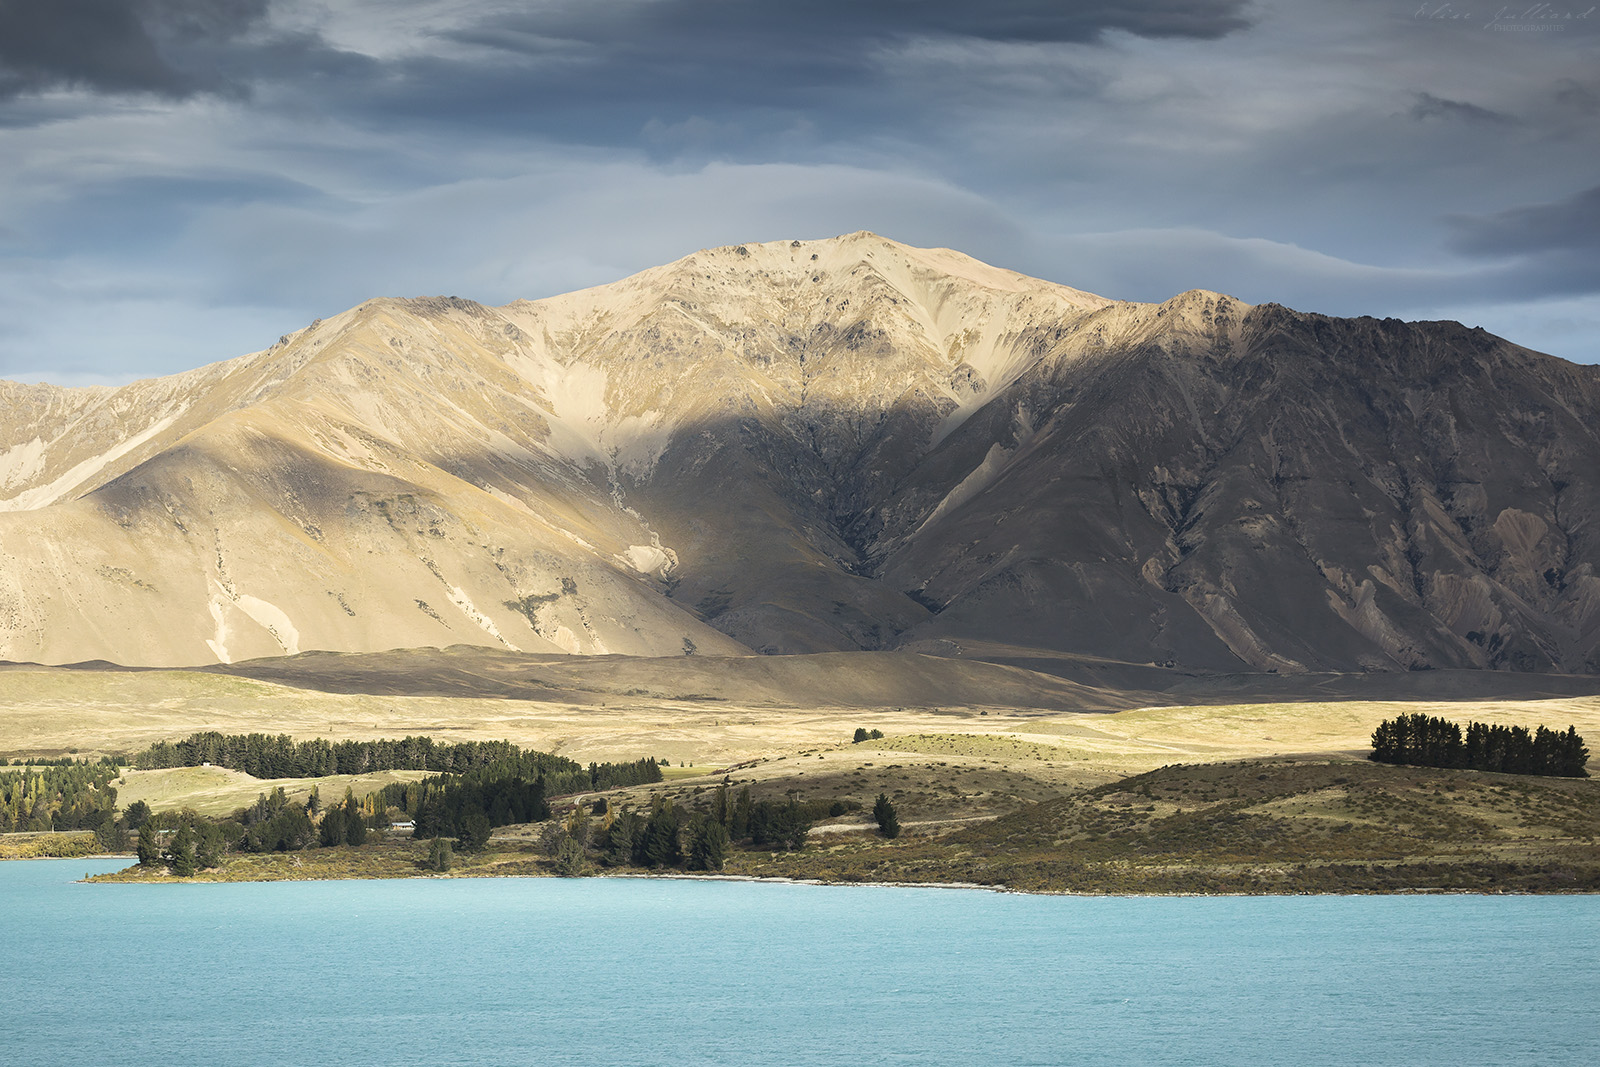 lake-tekapo-new-zealand-nouvelle-zelande-mackenzie-canterbury-south-island-southern-alps-dark-sky-reserve-mont-john-montagne-mountain-travel-voyage